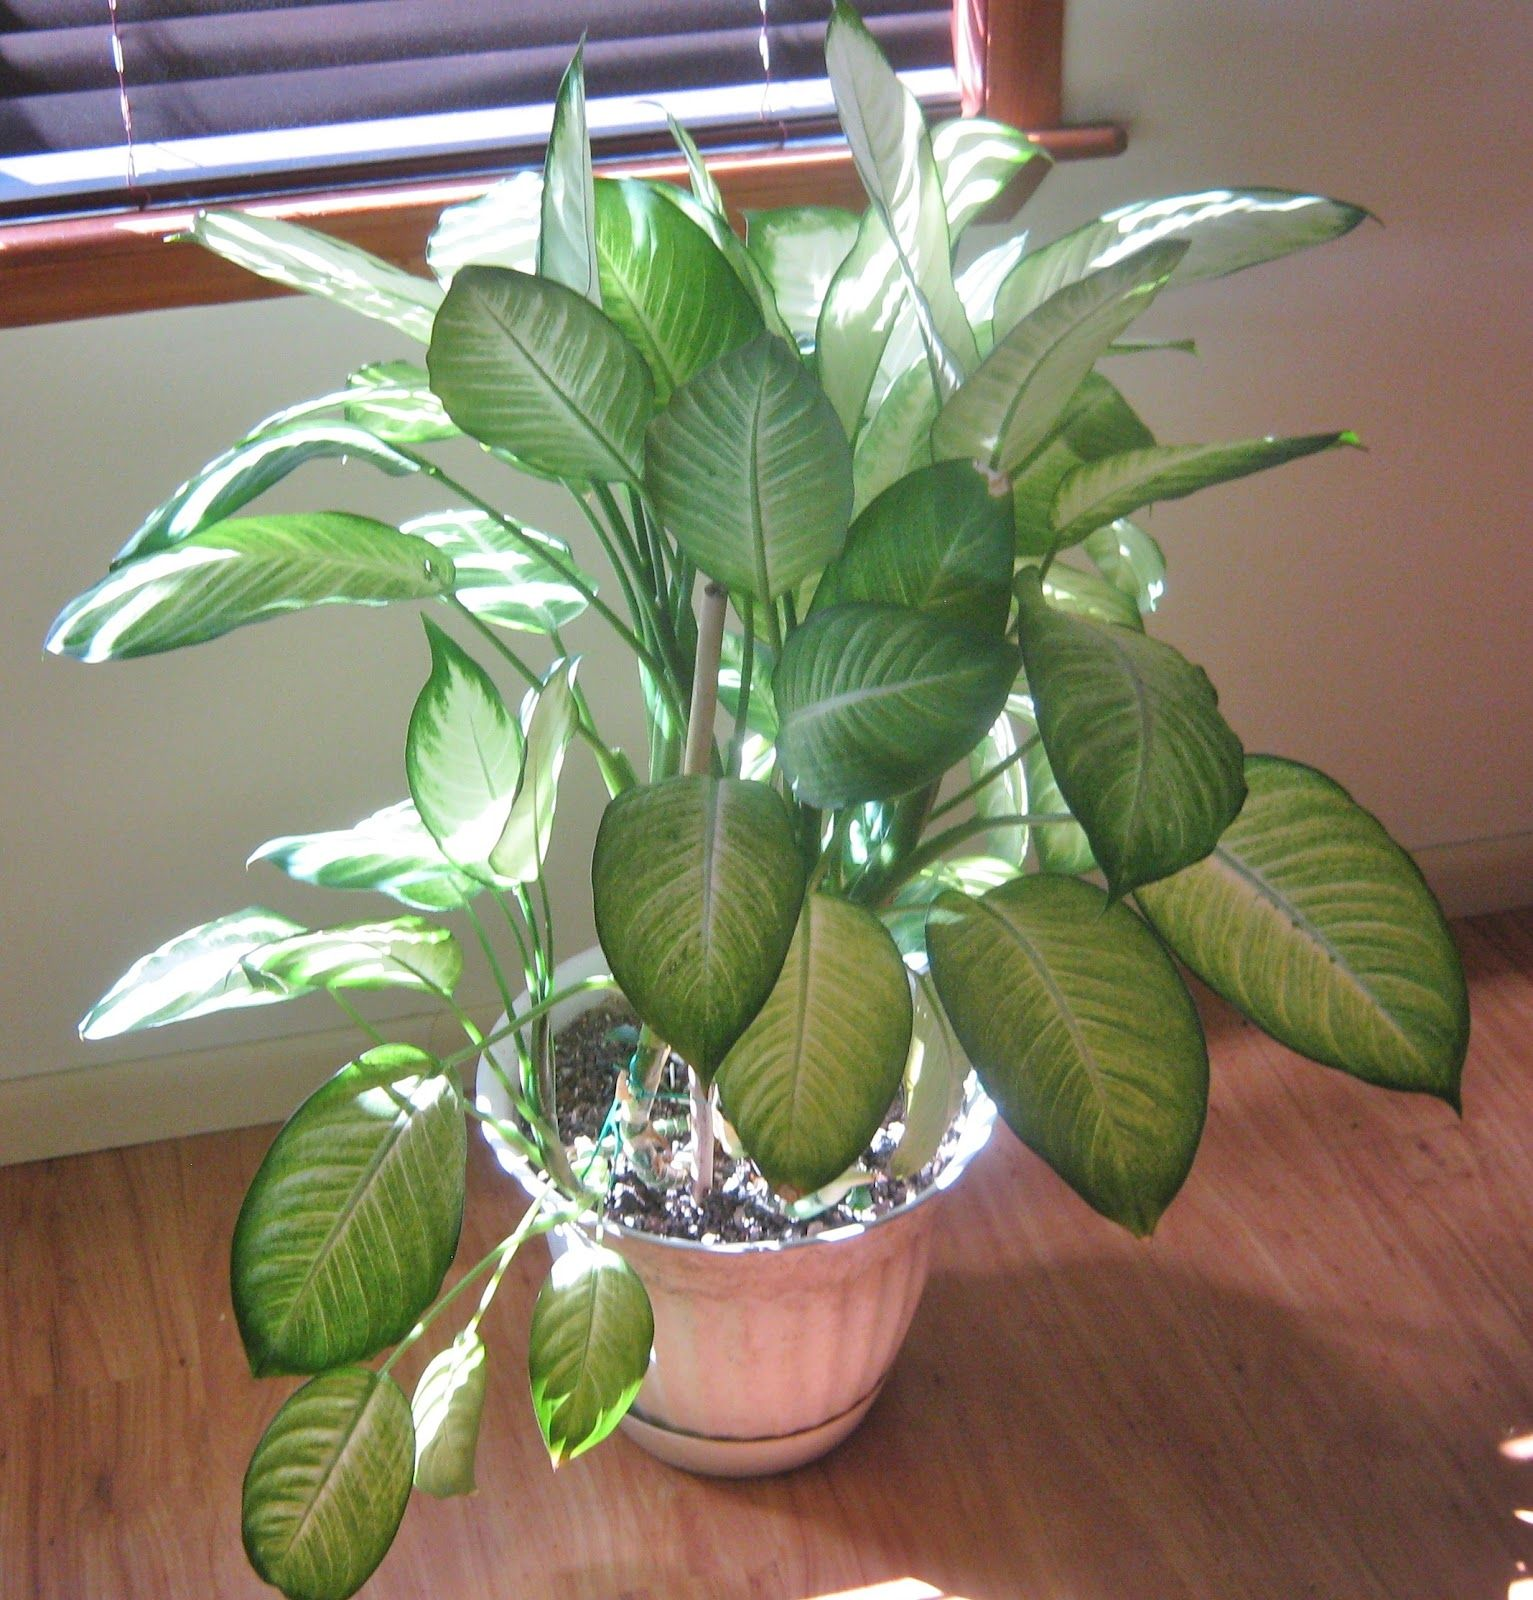 Dumb cane highly toxic house plant indoor jungle Images of indoor plants